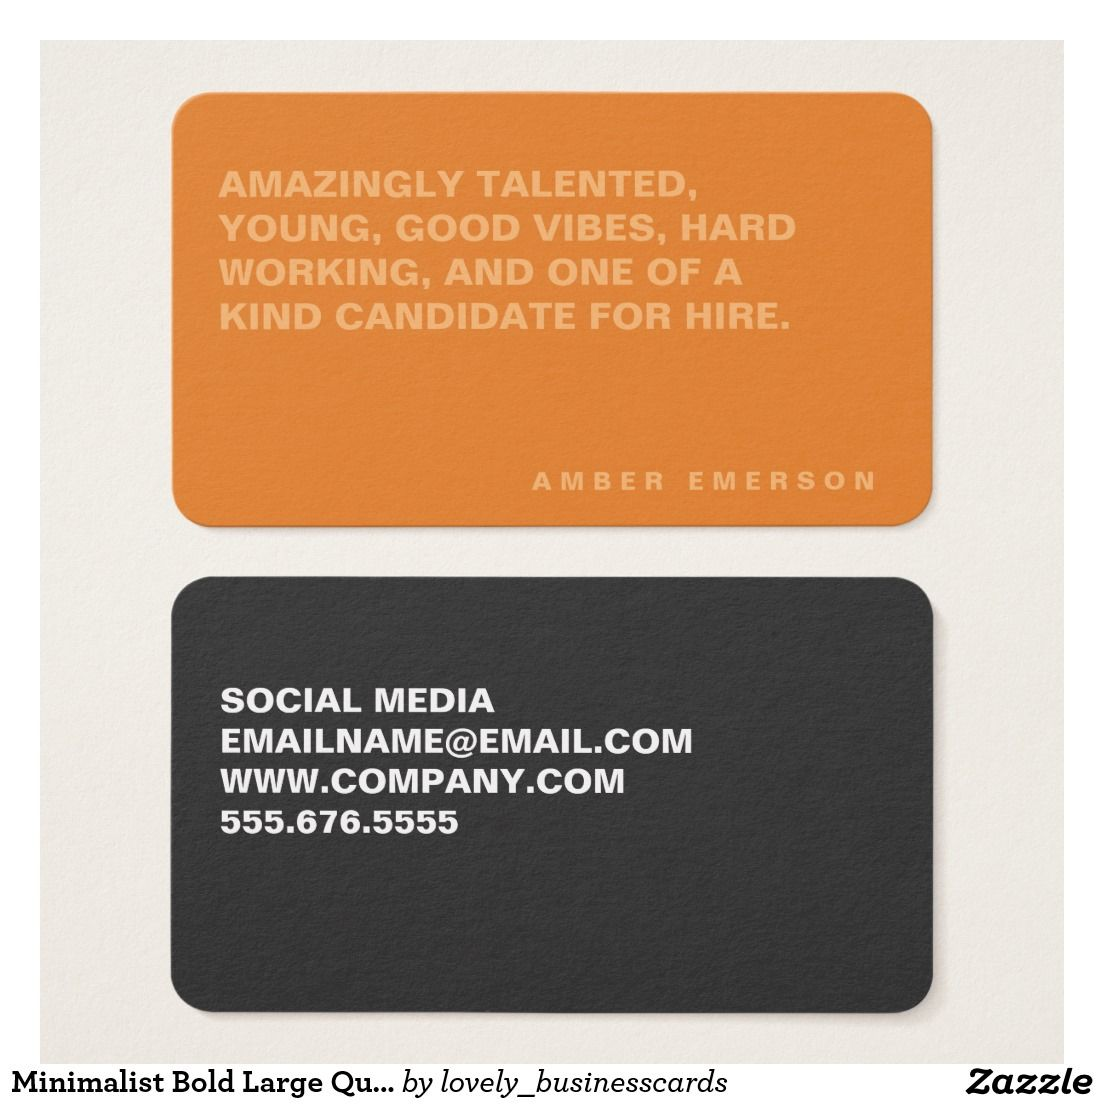 Minimalist Bold Large Quote Business Card #boldtext #networking ...